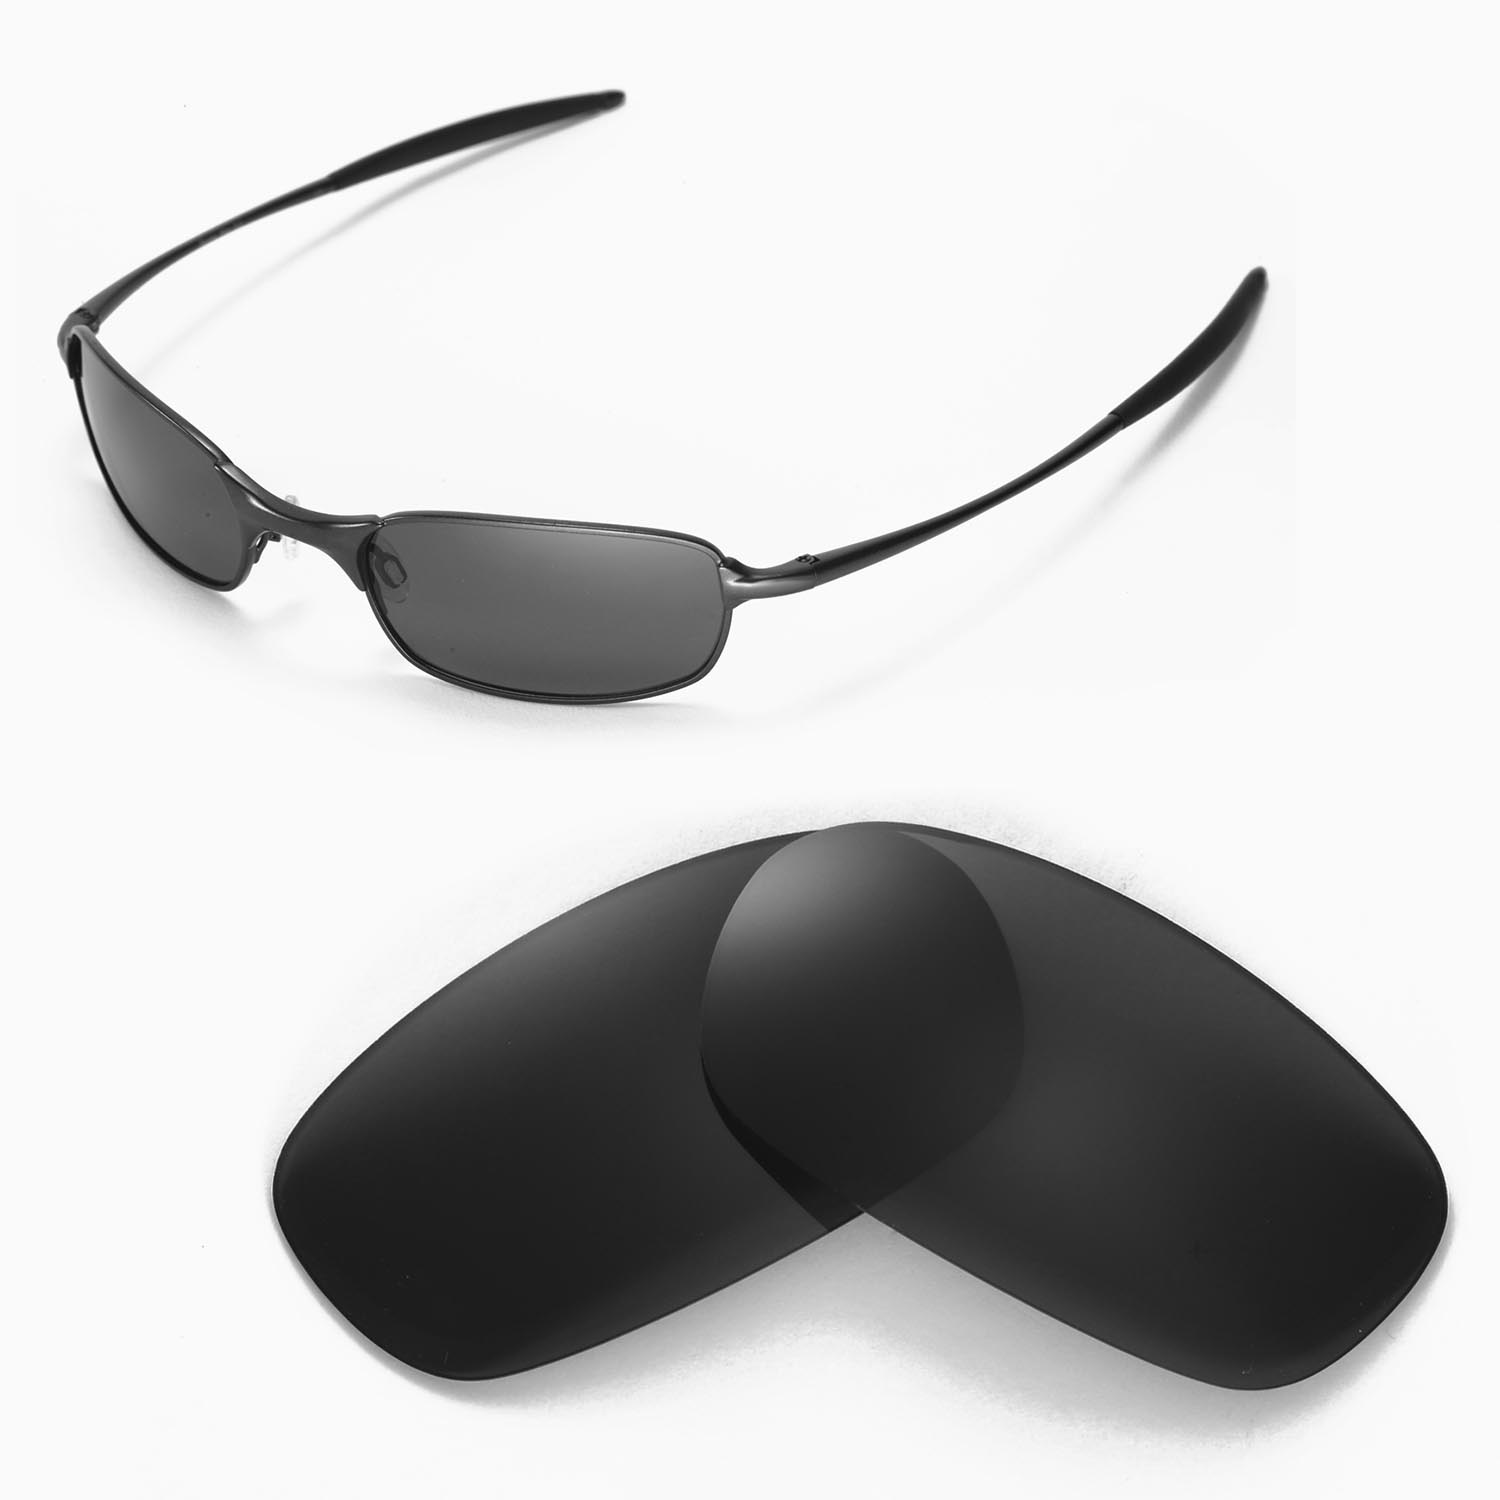 a50530ac99 Details about New Walleva Polarized Black Replacement Lenses For Oakley  Square Wire 2.0